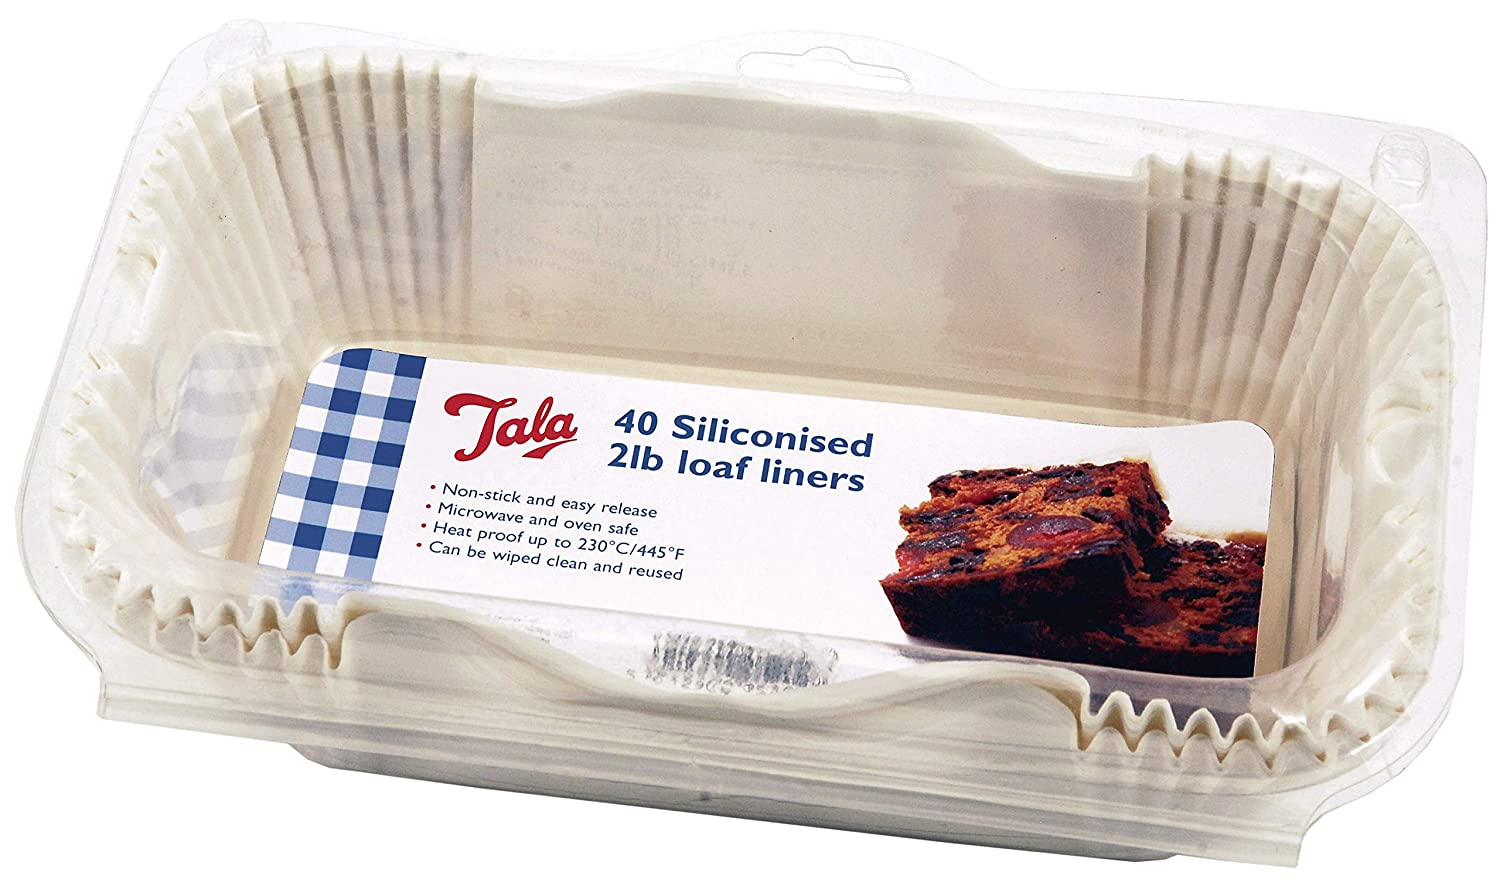 Cream Tala 10A05202 Siliconised Loaf Liners